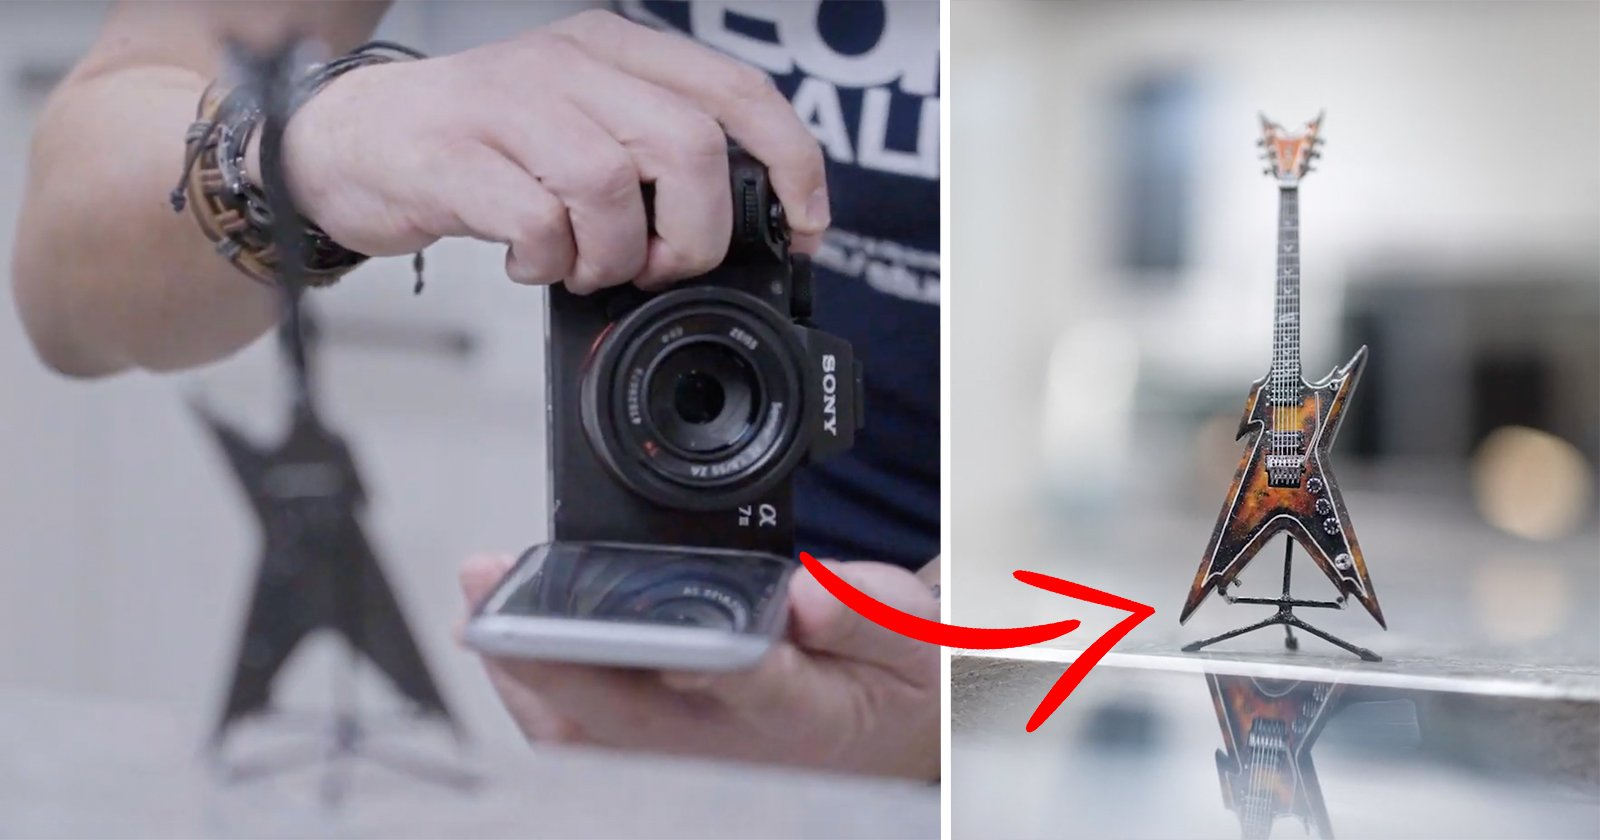 7 Simple Camera Hacks in 90 Seconds